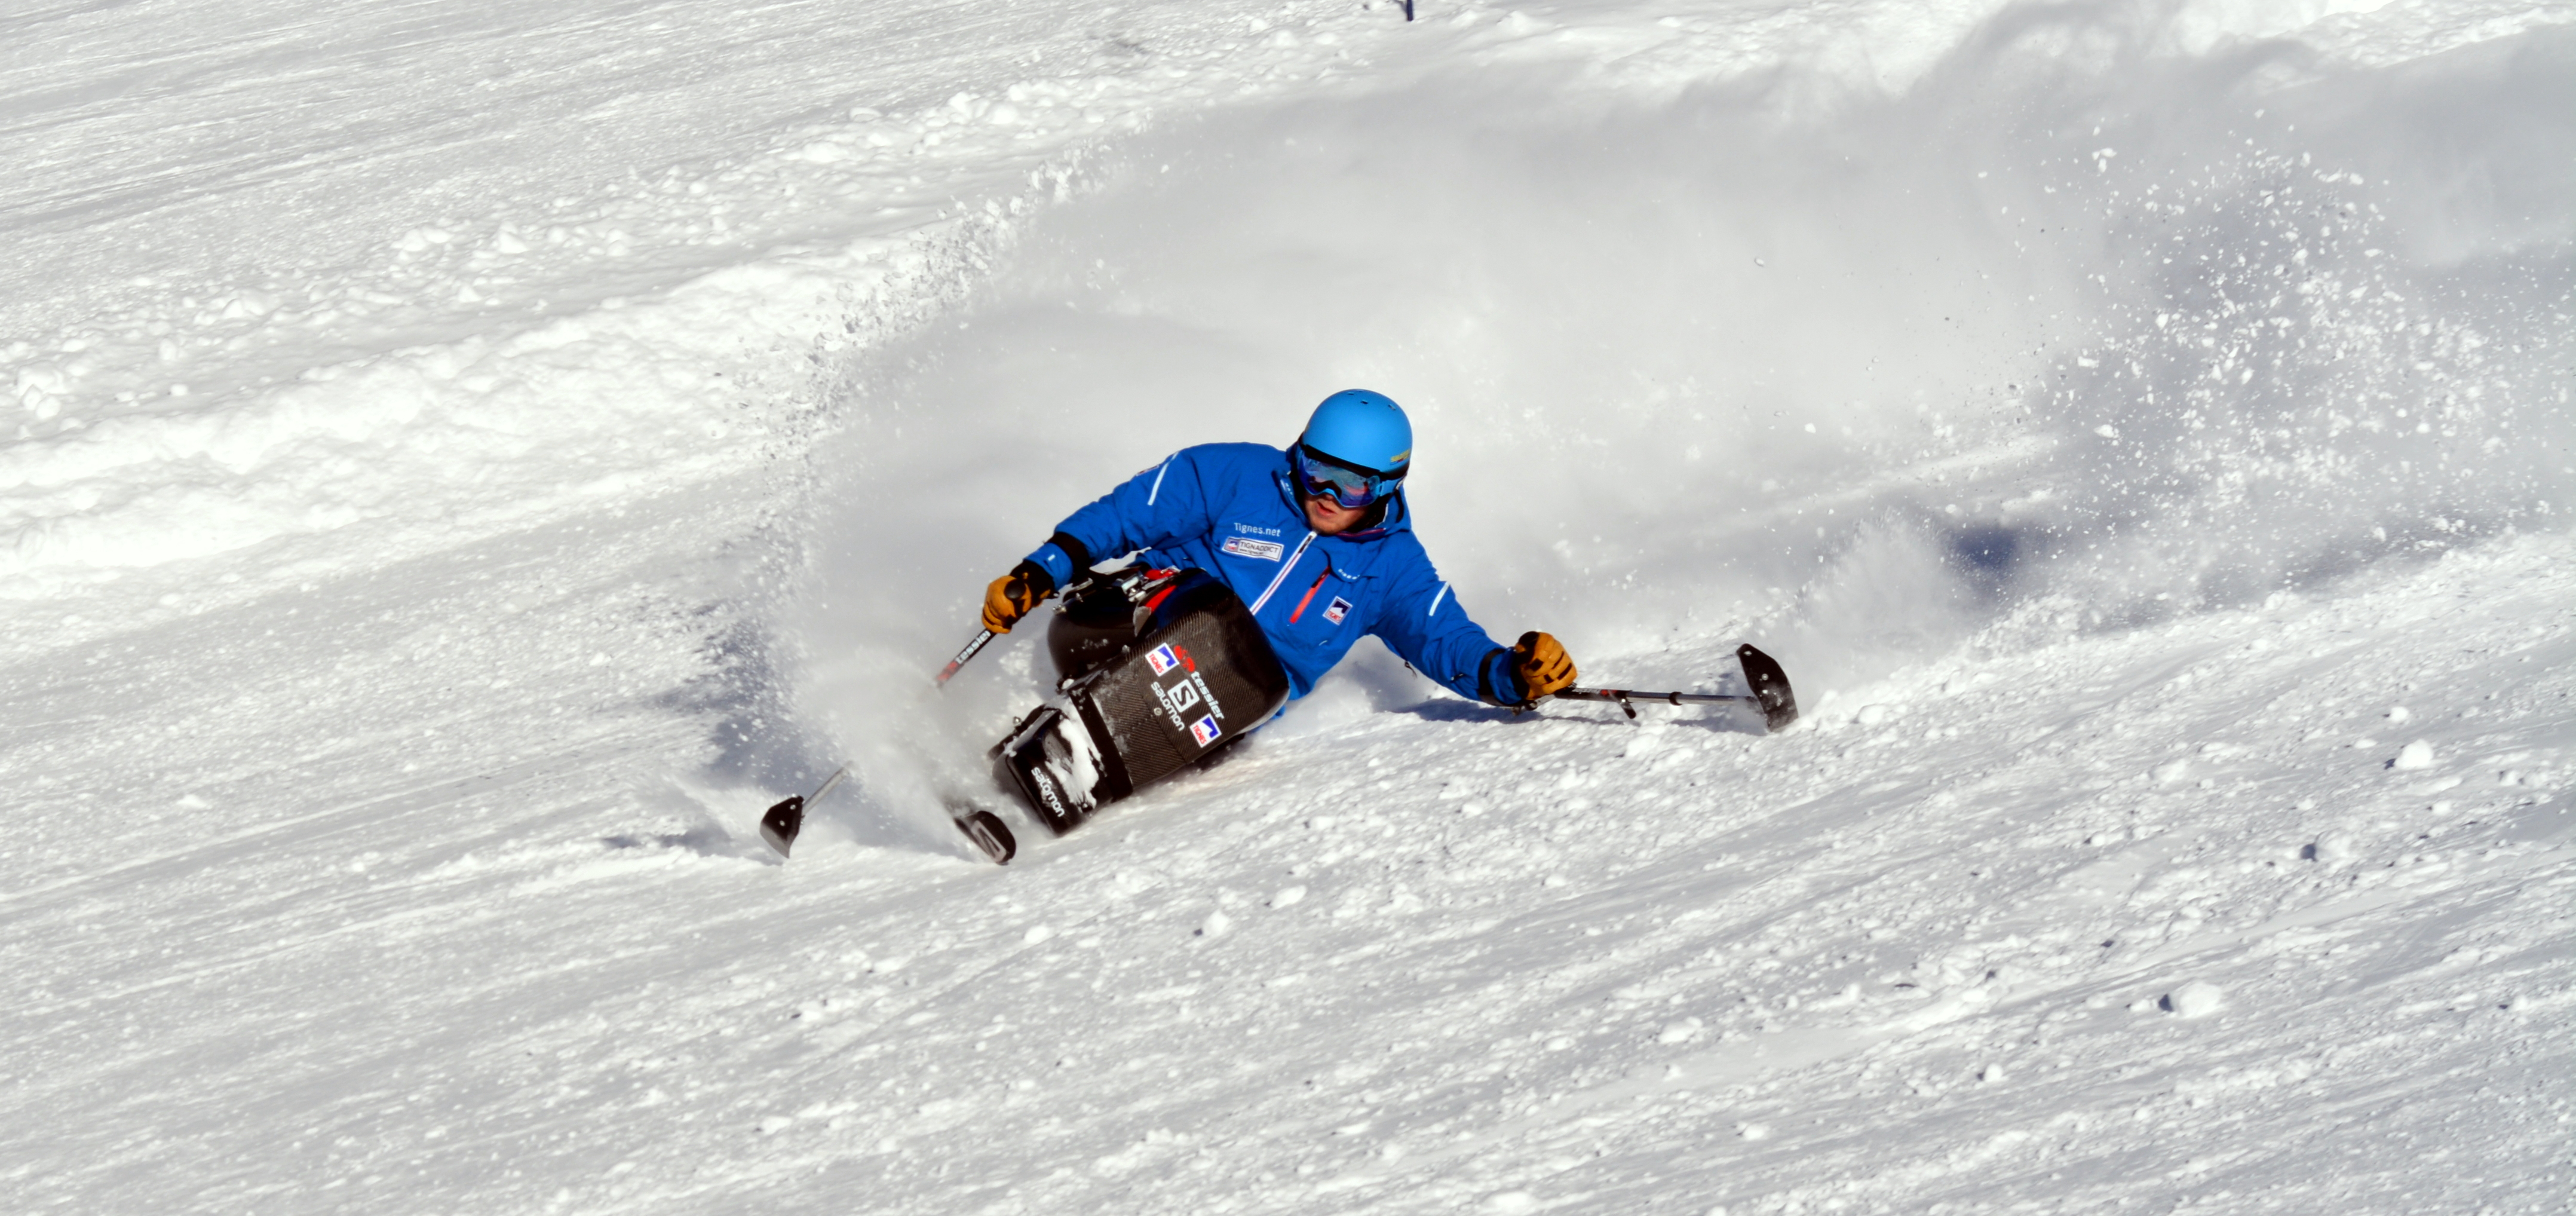 LOU BRAZ DAGAND ACTION @ TIGNES.NET